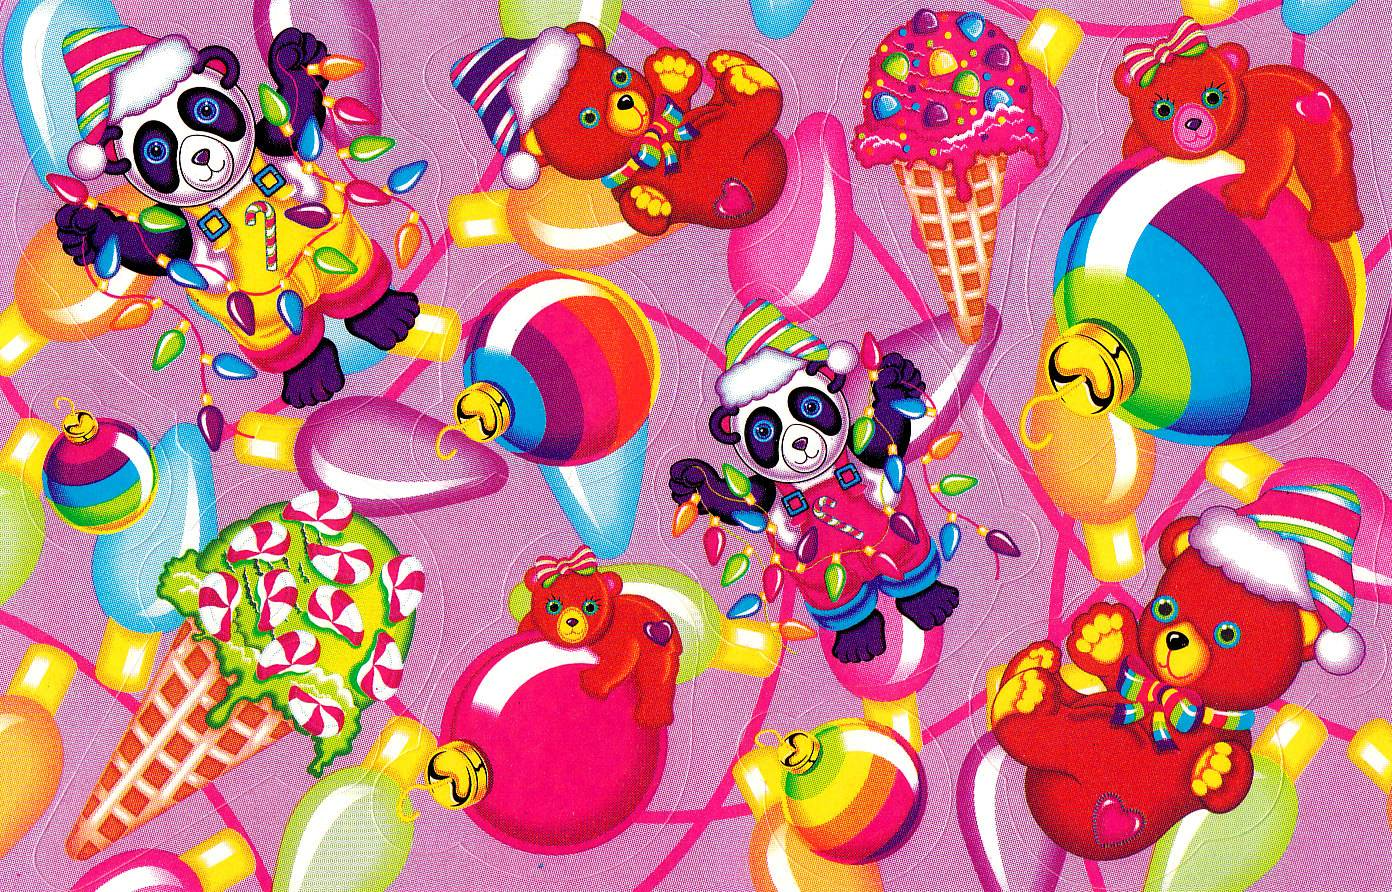 Lisa Frank Wallpaper  Best Cool Wallpaper HD Download 1392x892